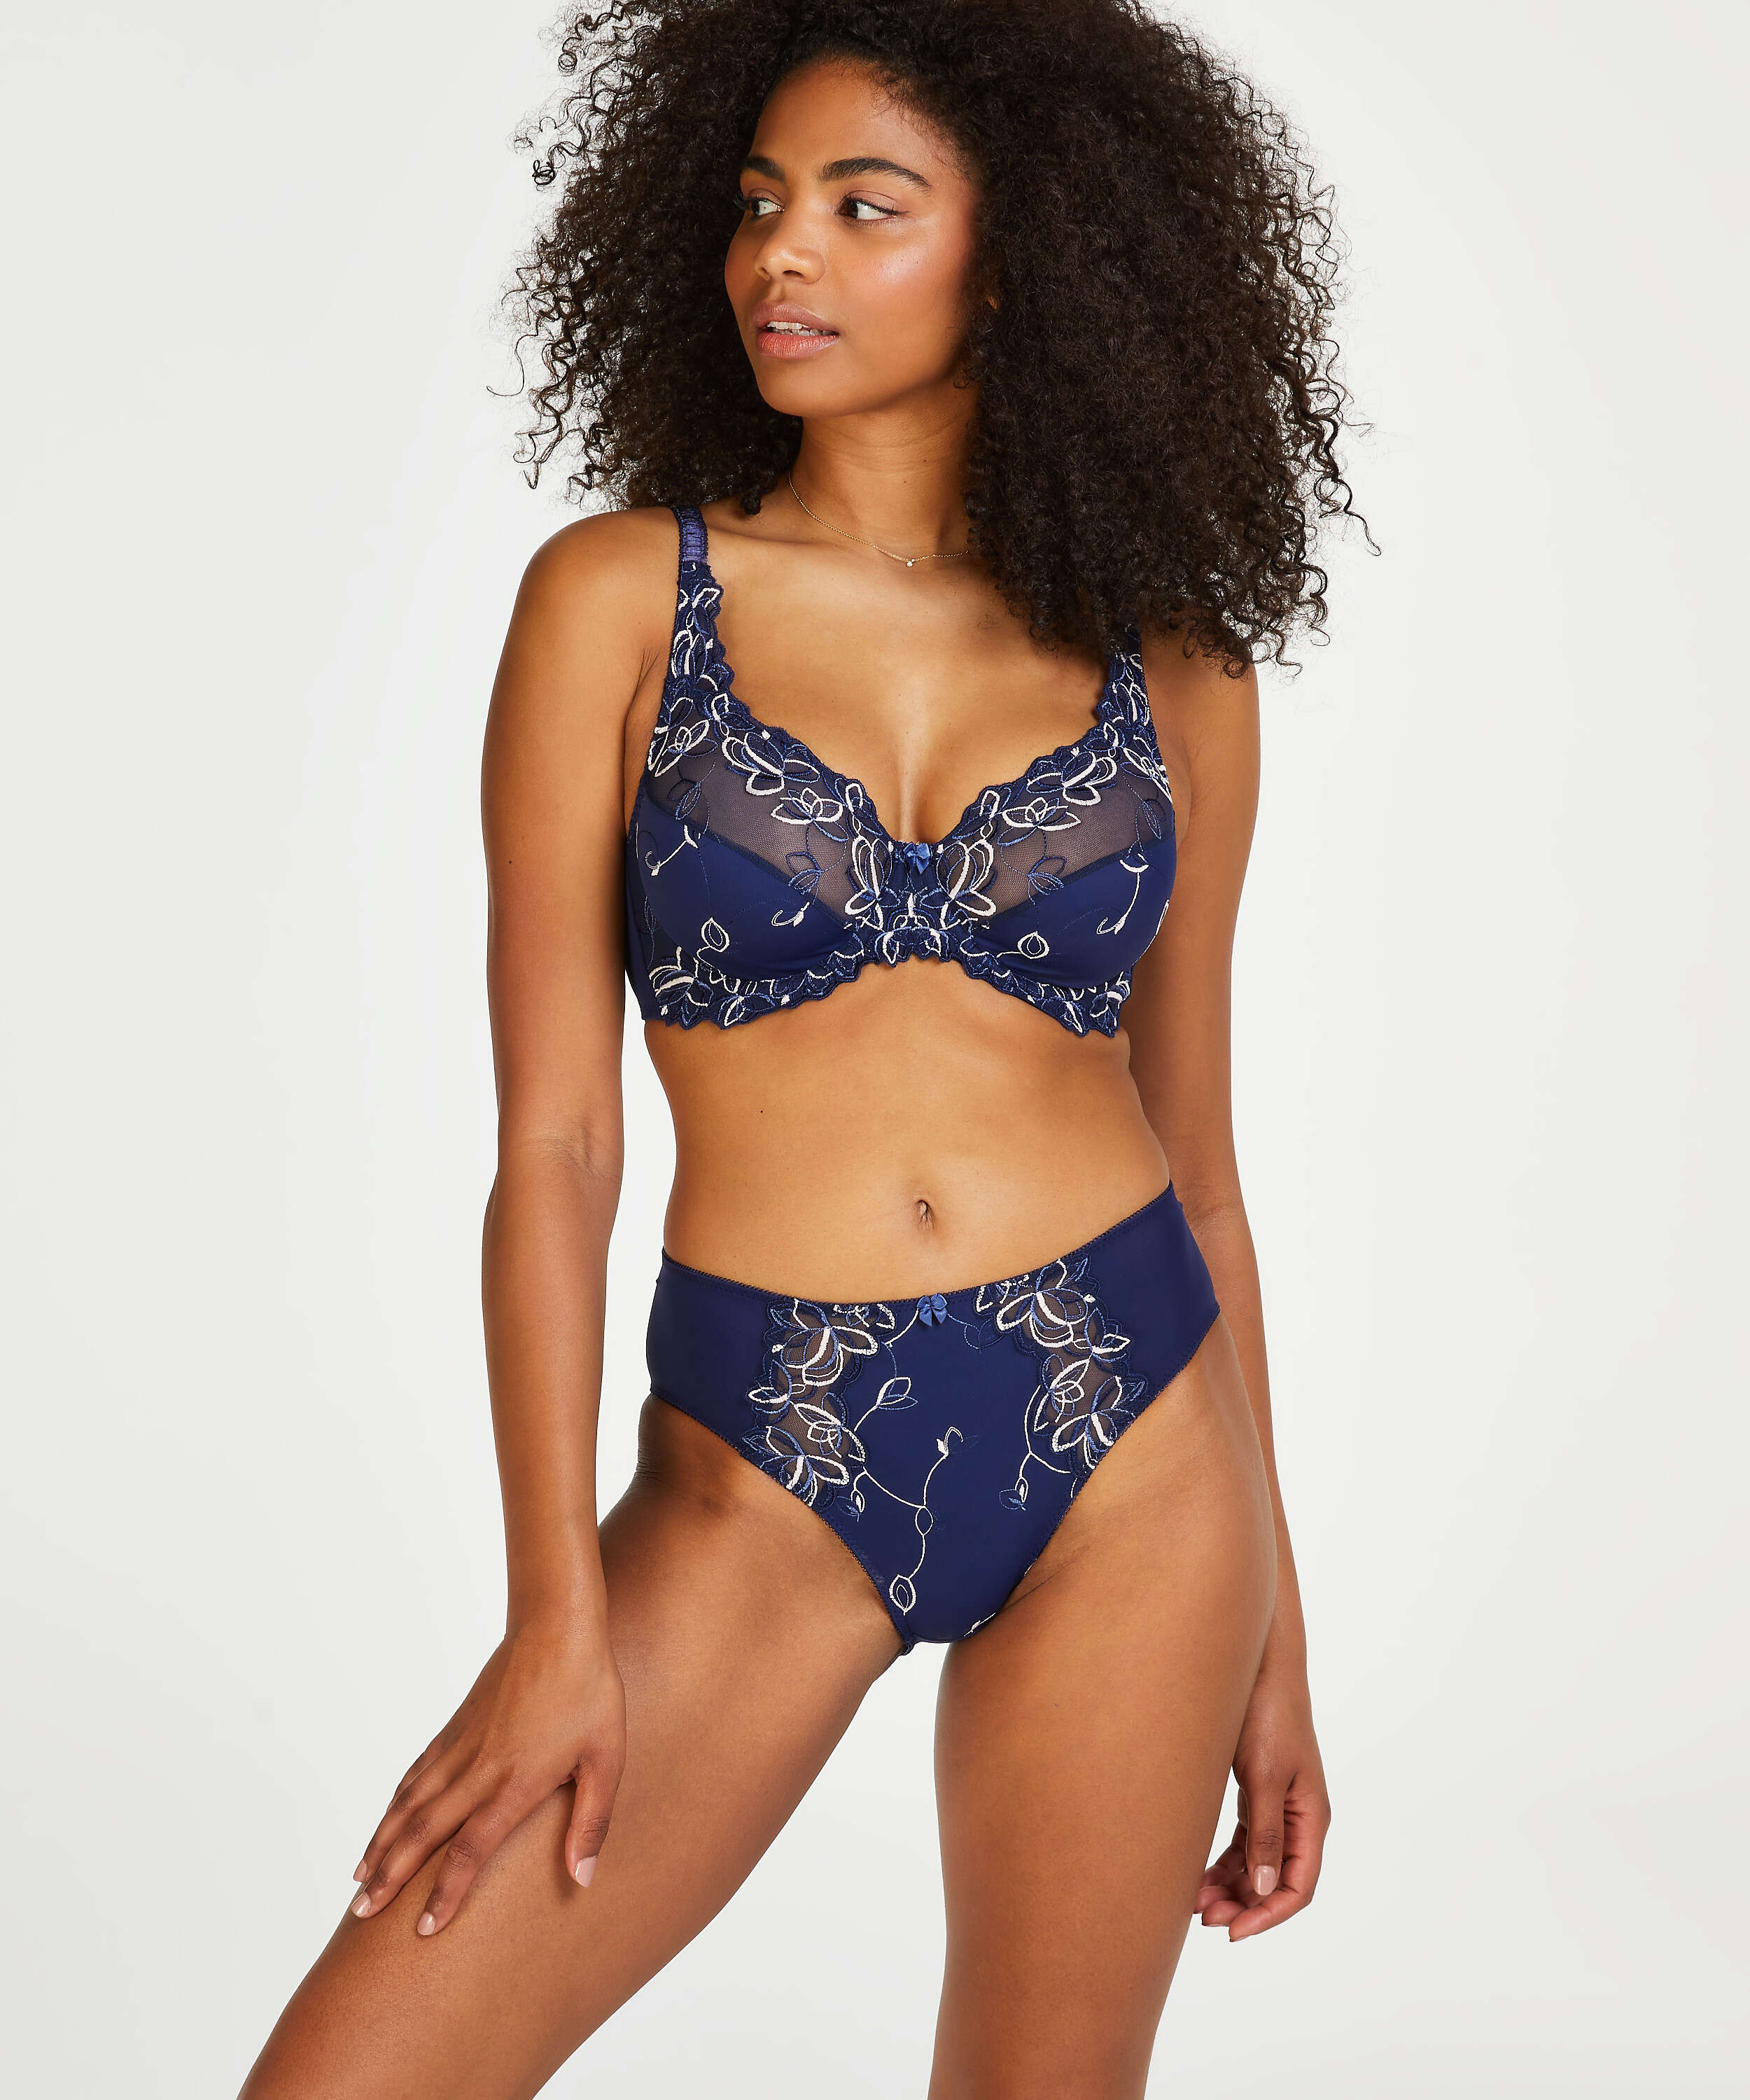 Diva Non-Padded Underwired Bra, Blue, main